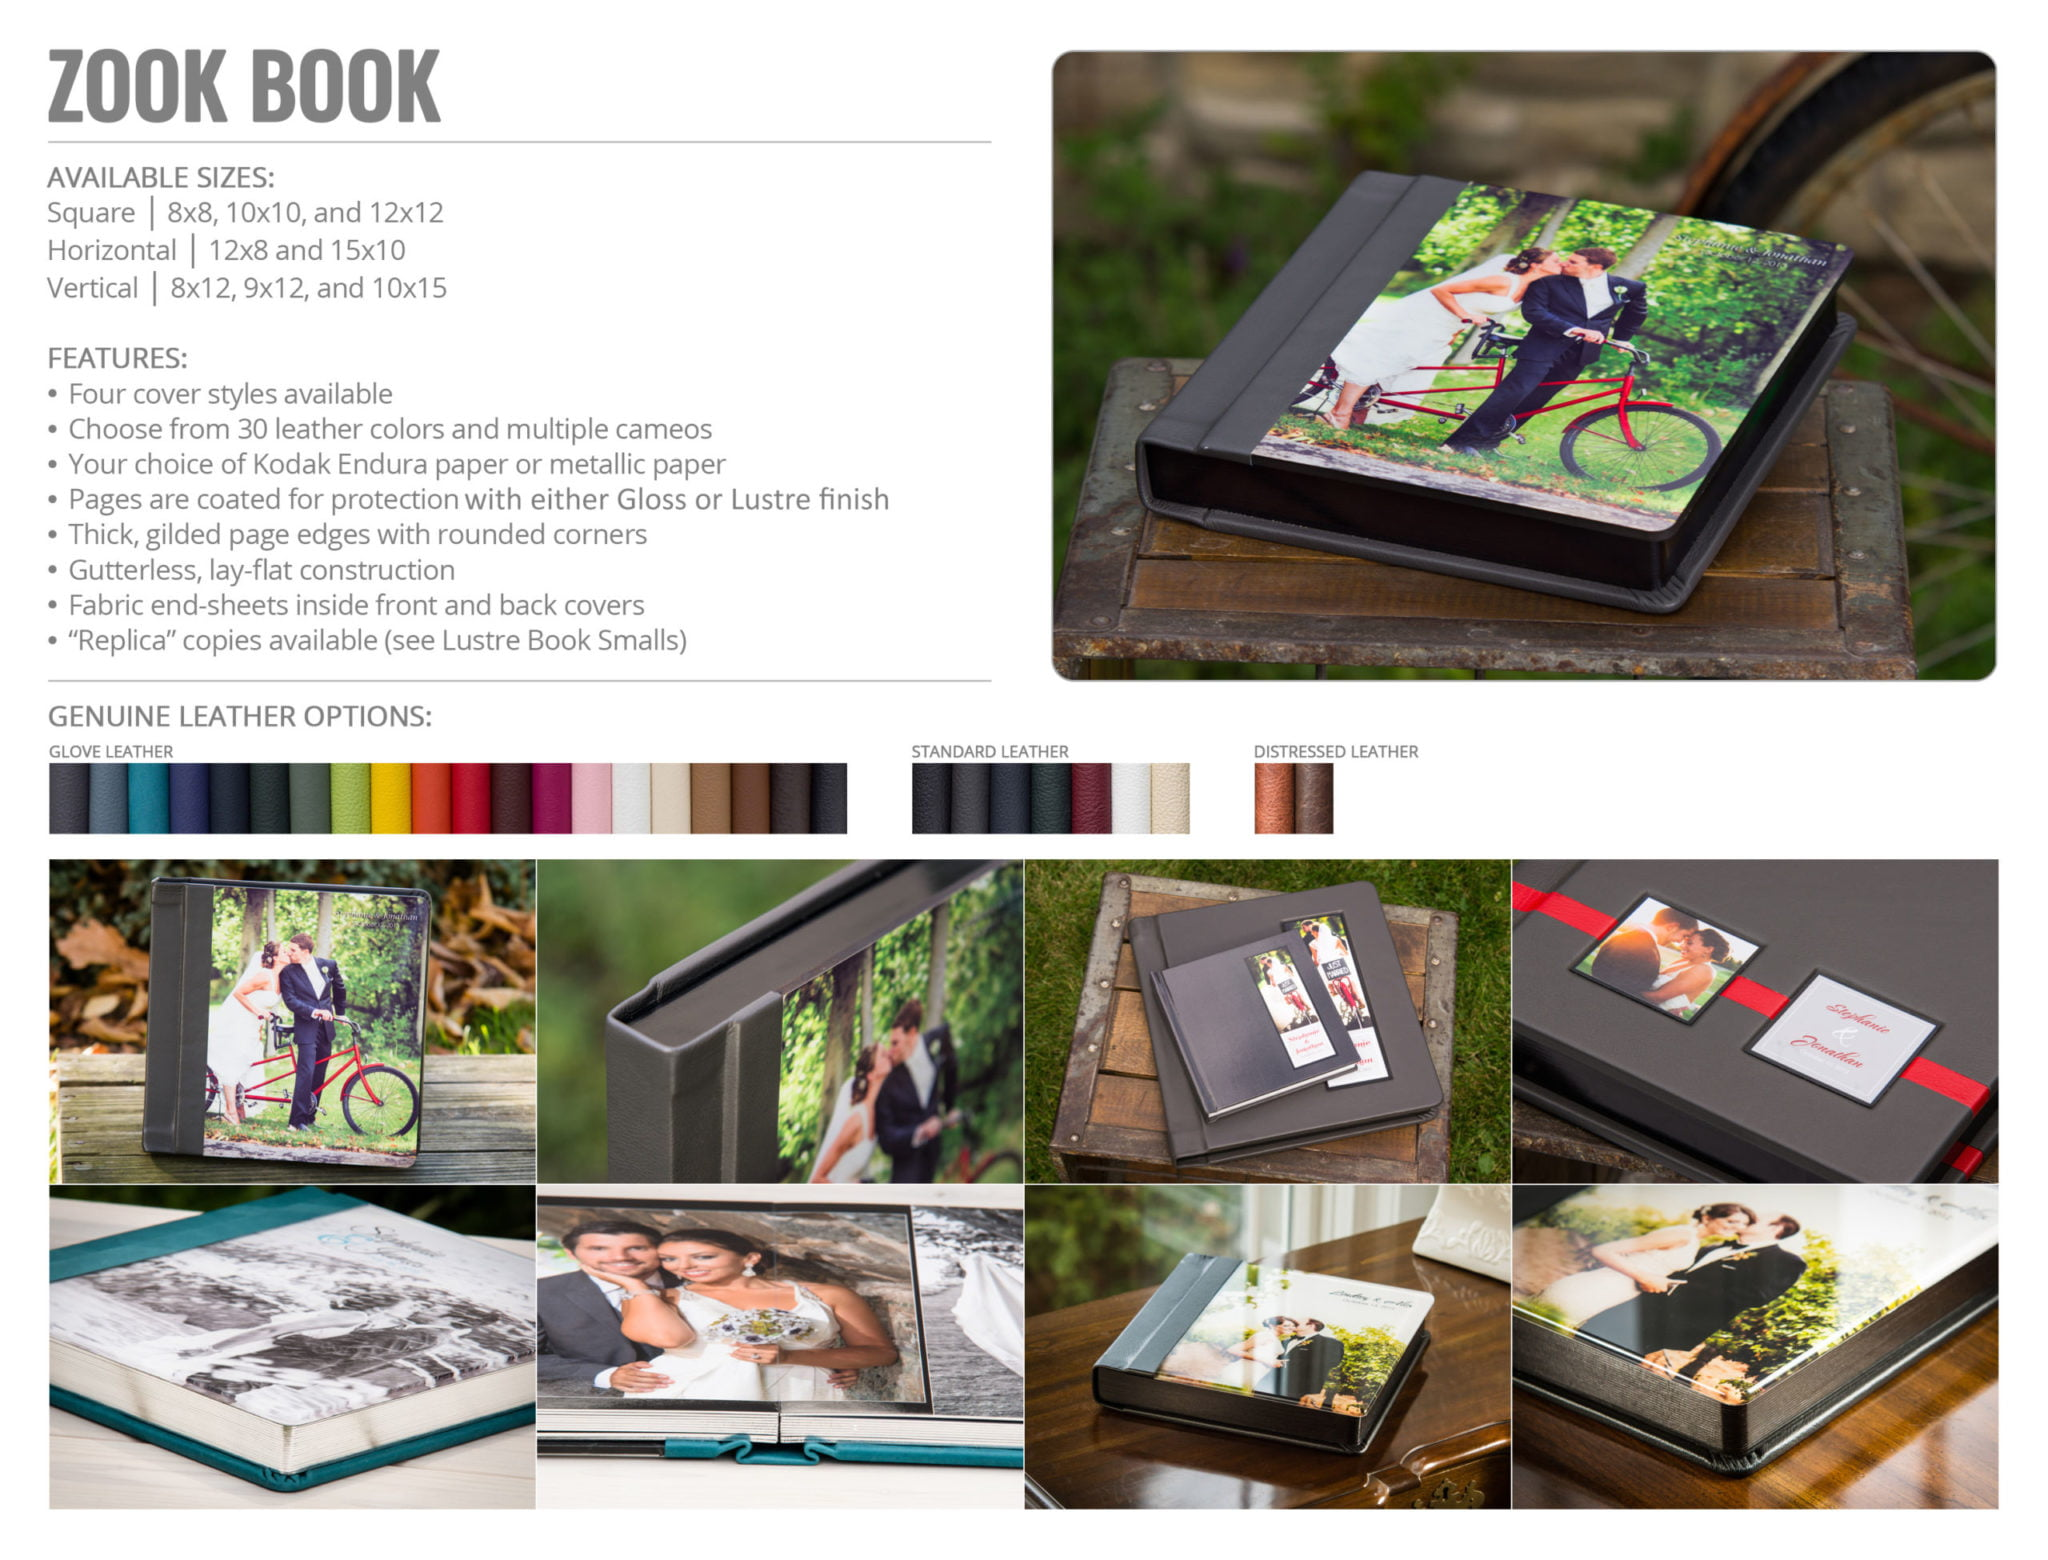 02 01 zbook product